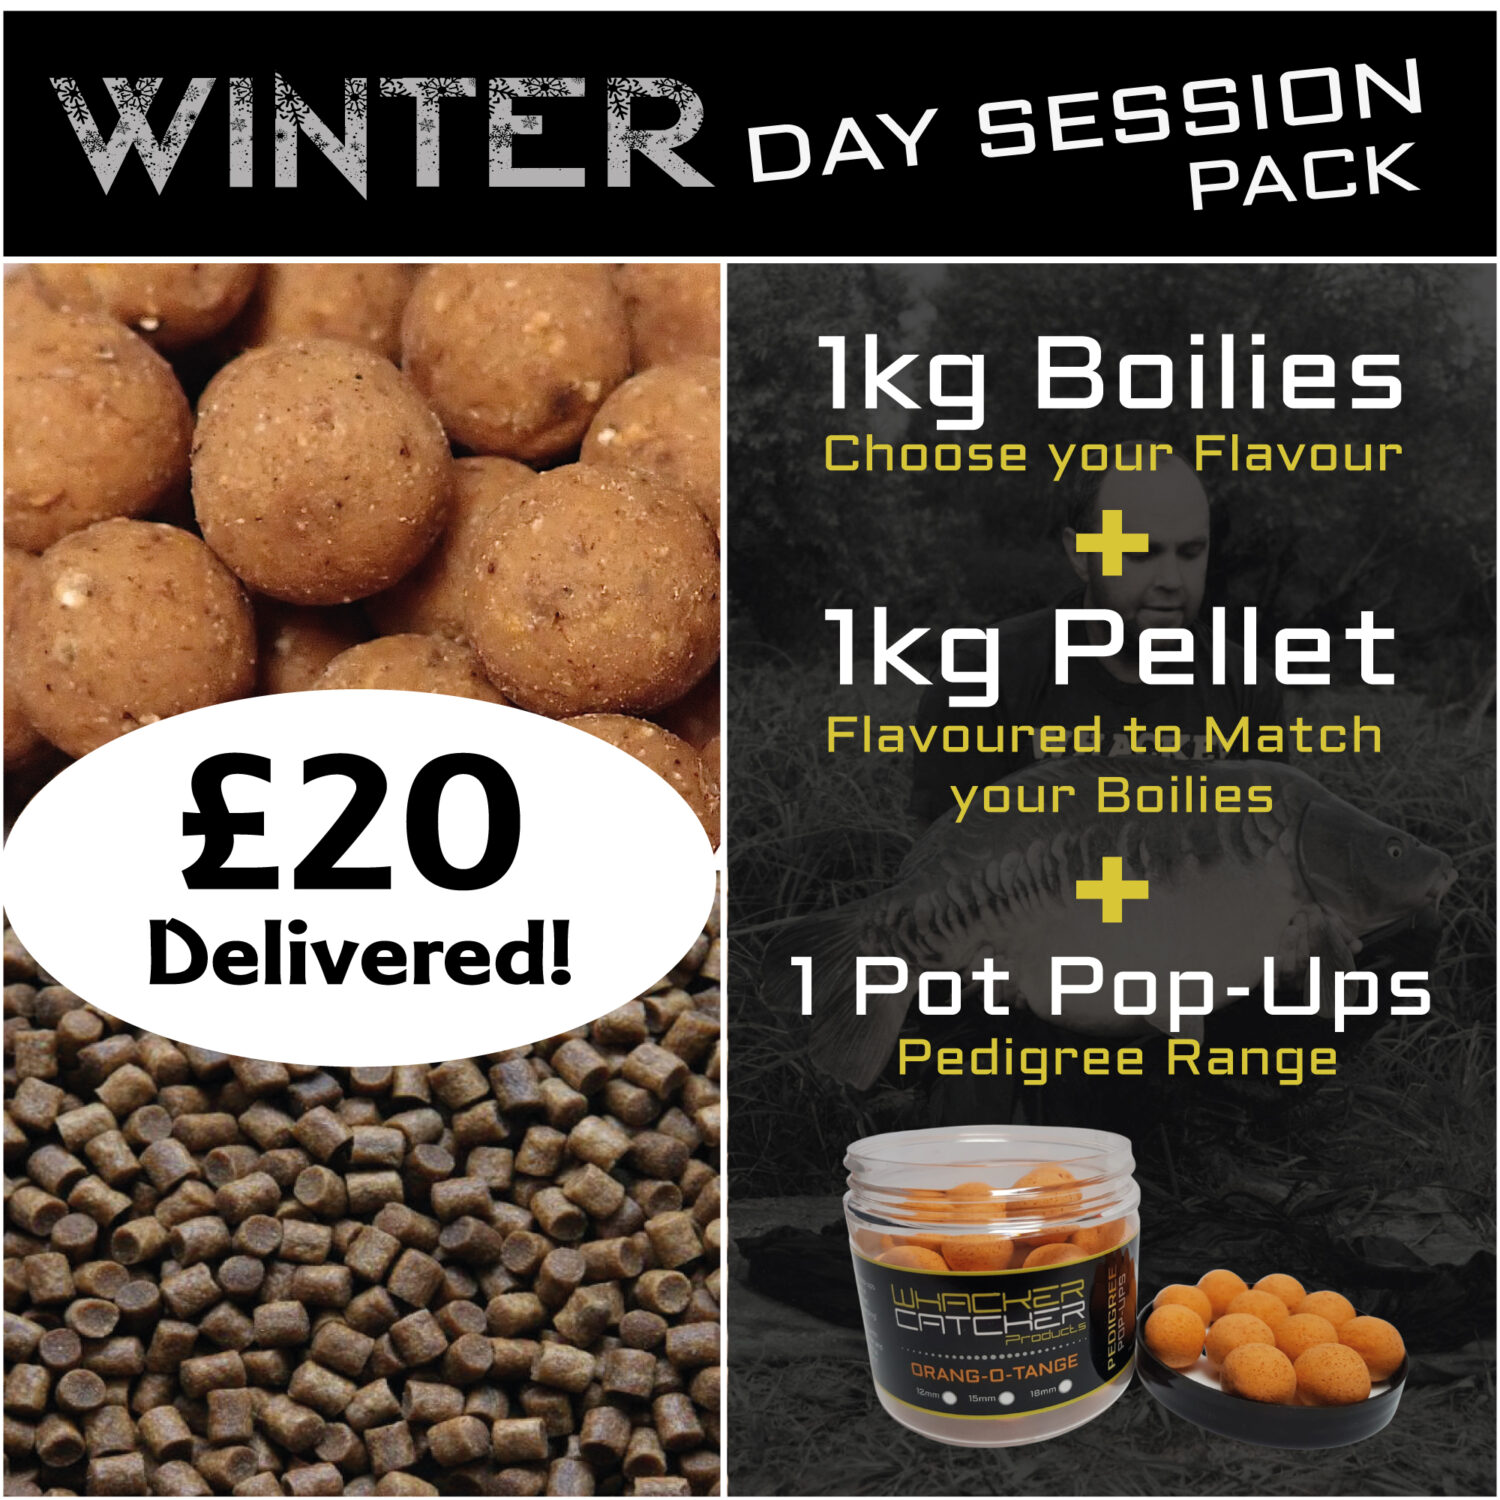 Winter-Day-Session-Pack